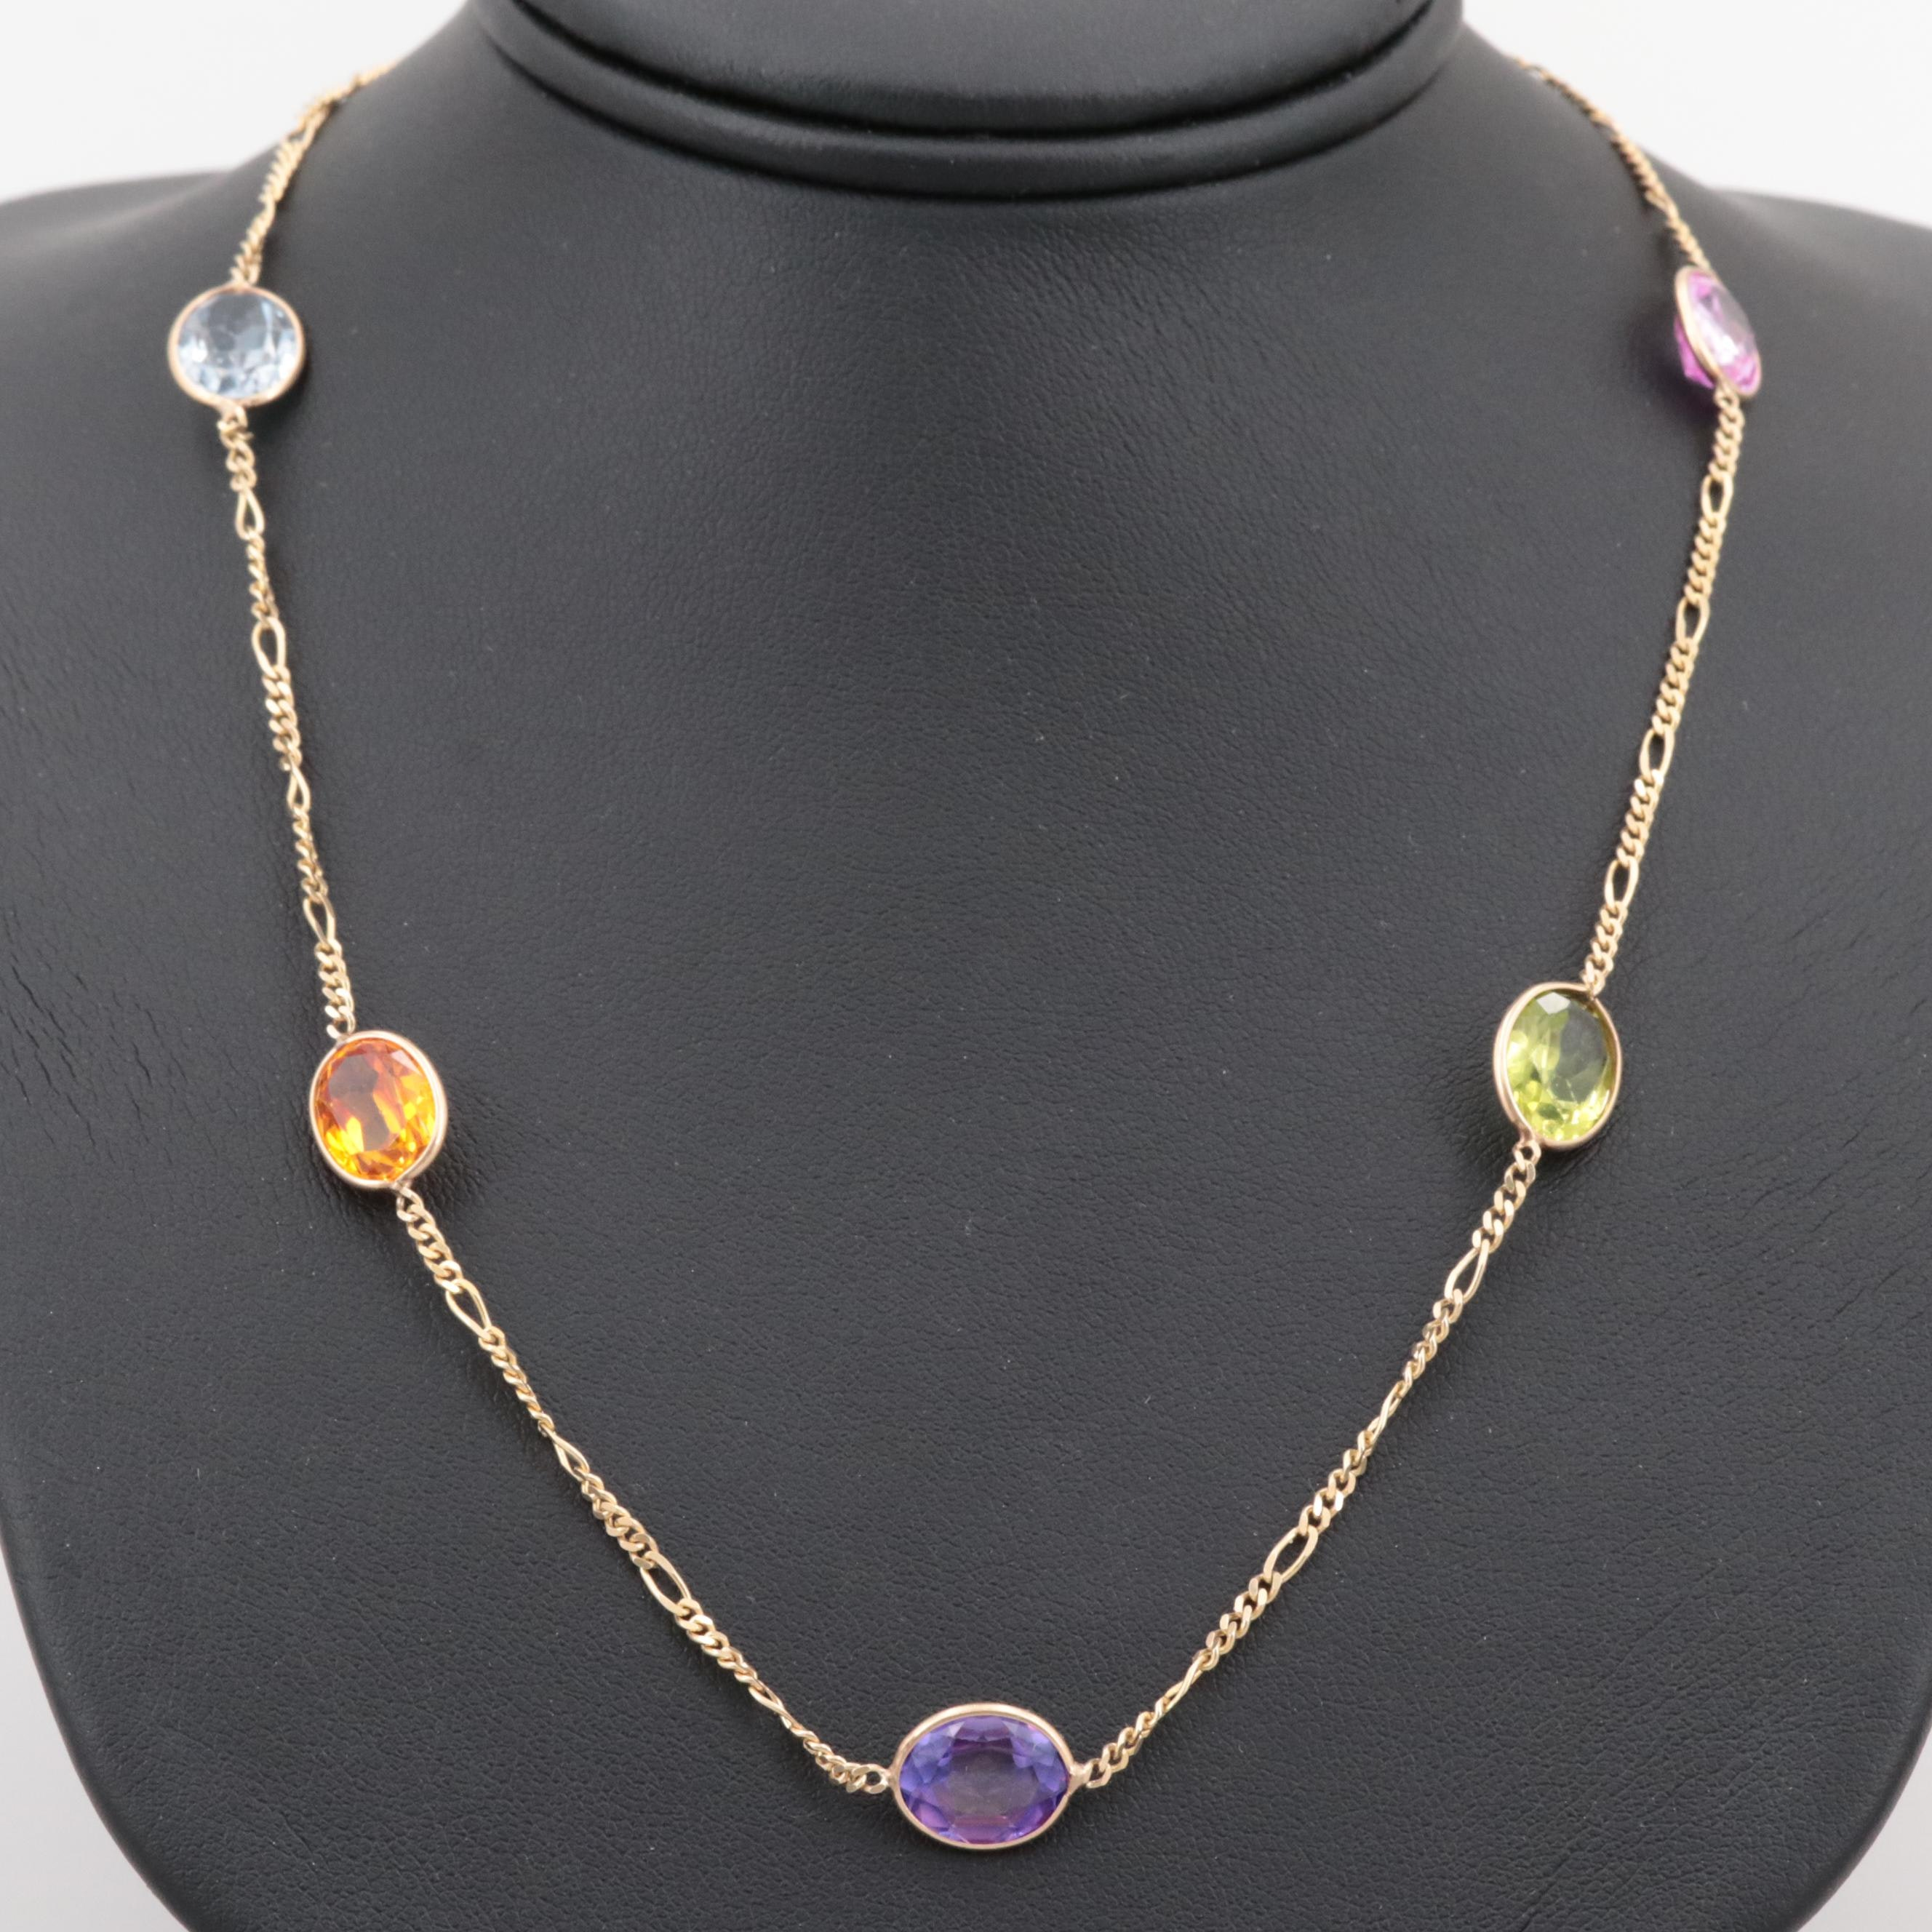 14K Yellow Gold Station Necklace with Sapphire, Peridot, Garnet and Spinel